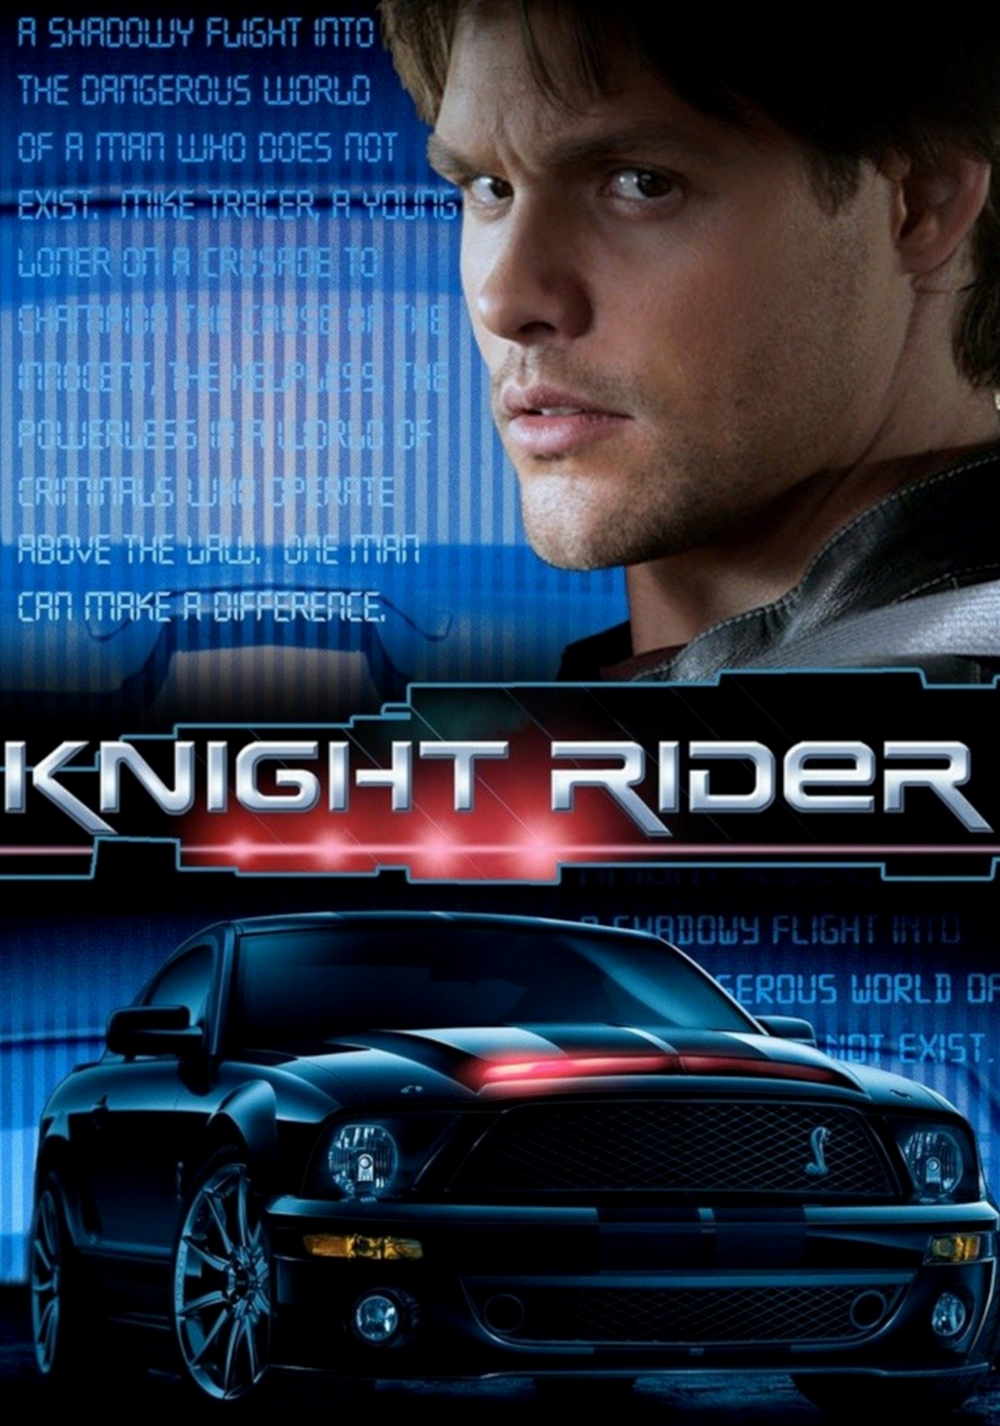 Knight Rider (2008) | TV fanart | fanart.tv